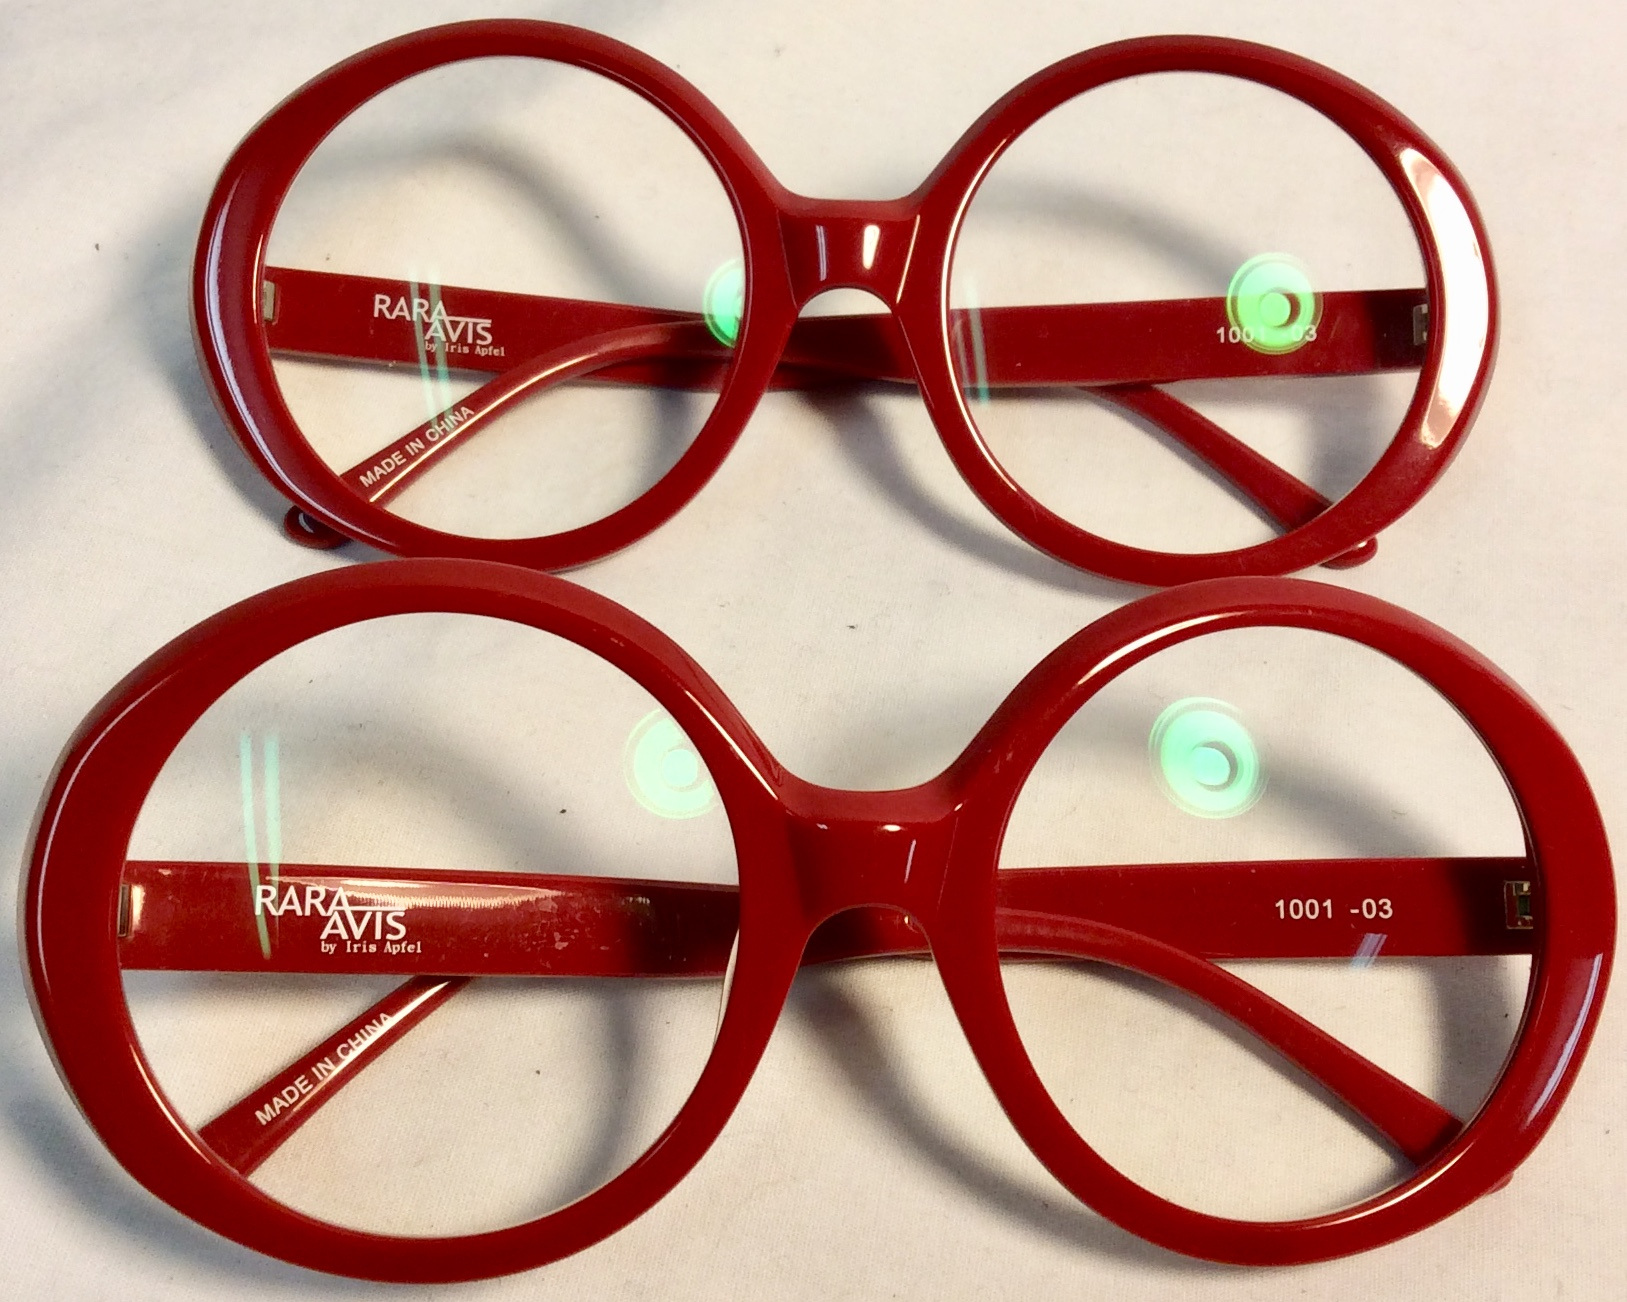 ALR - Rara Avis eyeglasses with bog, round and red plastic frame